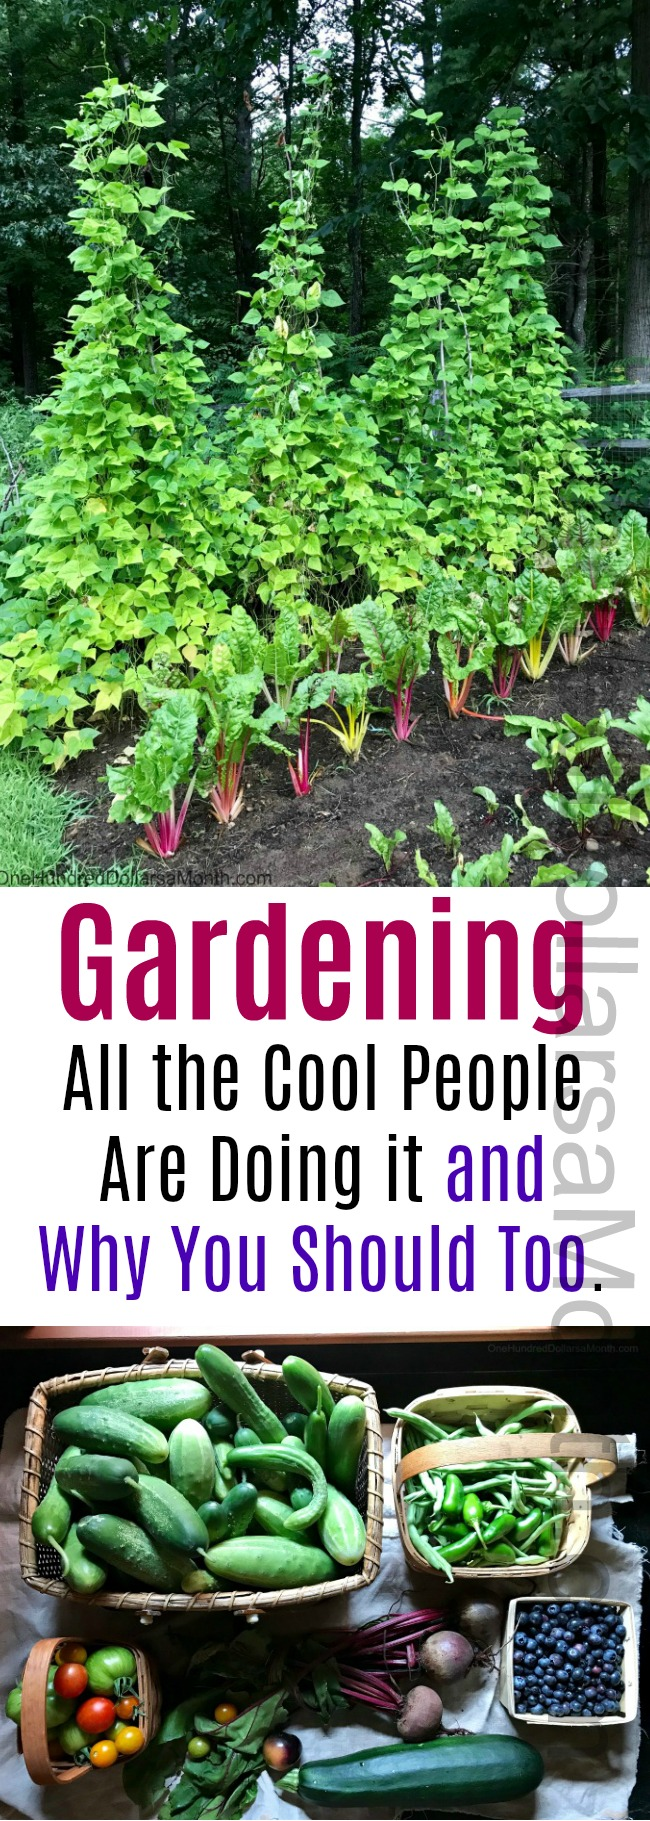 Gardening.  All the Cool People Are Doing it and Why You Should Too.